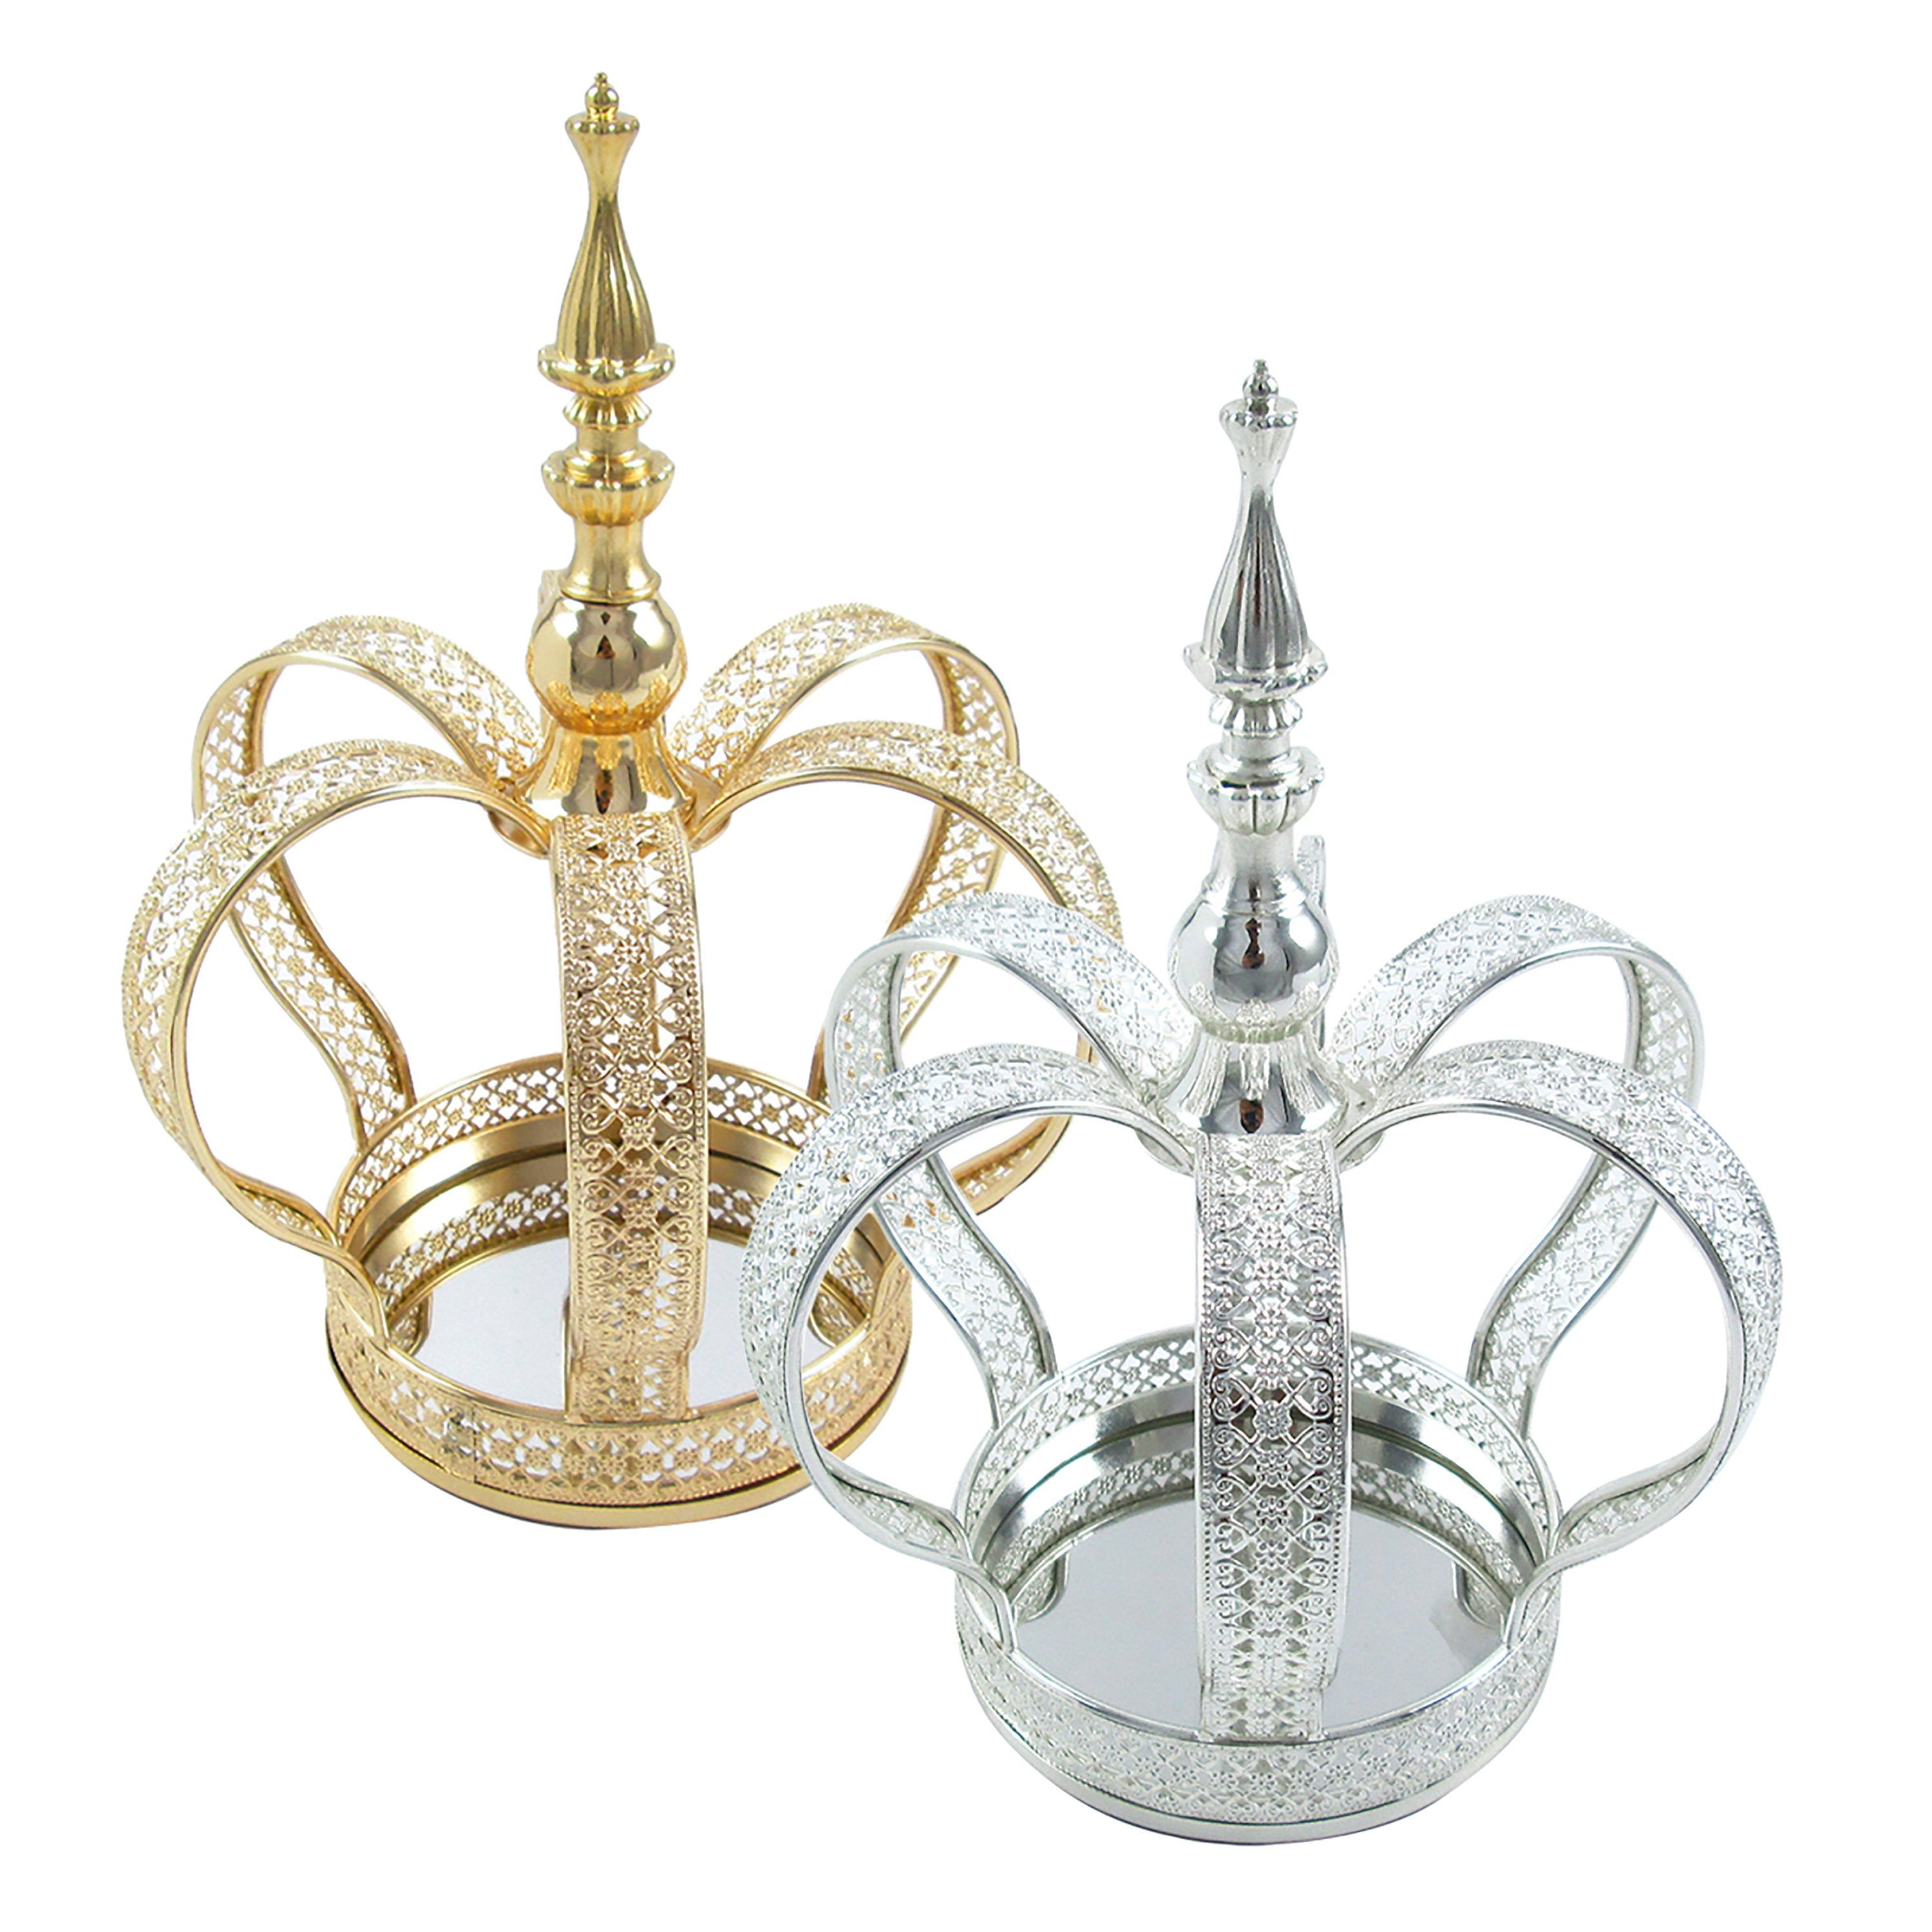 32 Decorative Crown Metal Crown Decor Gold Silver   Etsy in 32 ...